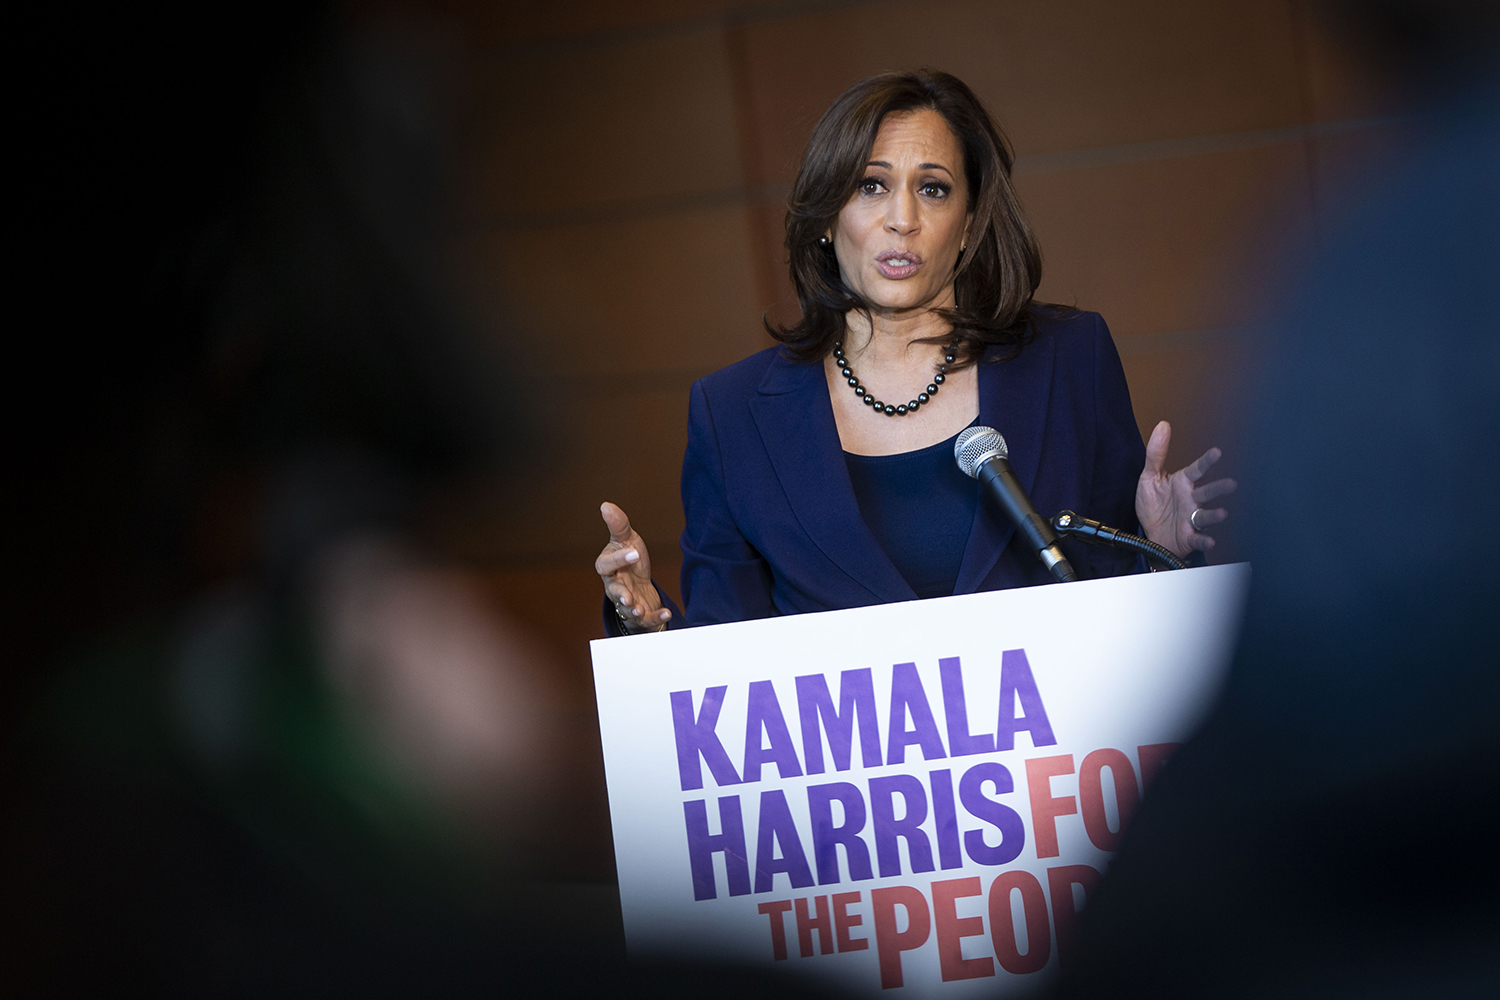 U.S. Sen. Kamala Harris speaks to reporters after announcing her candidacy for president at Howard University in Washington on Jan. 21, 2019.